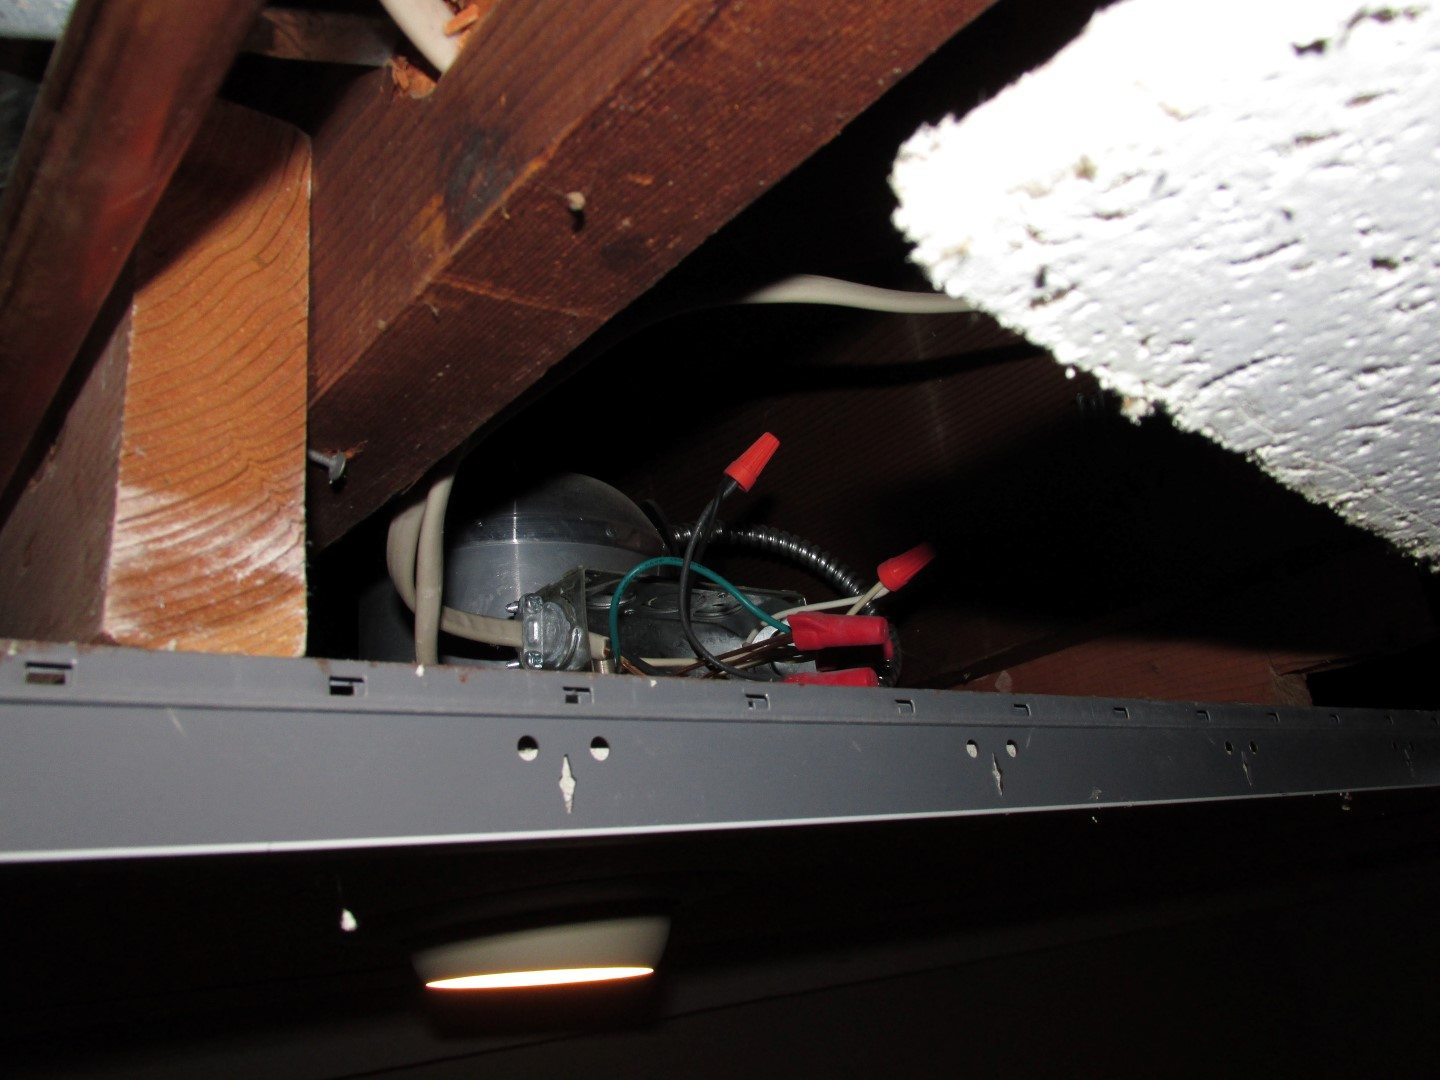 hight resolution of open electrical splices hazardous wiring above dropped ceiling